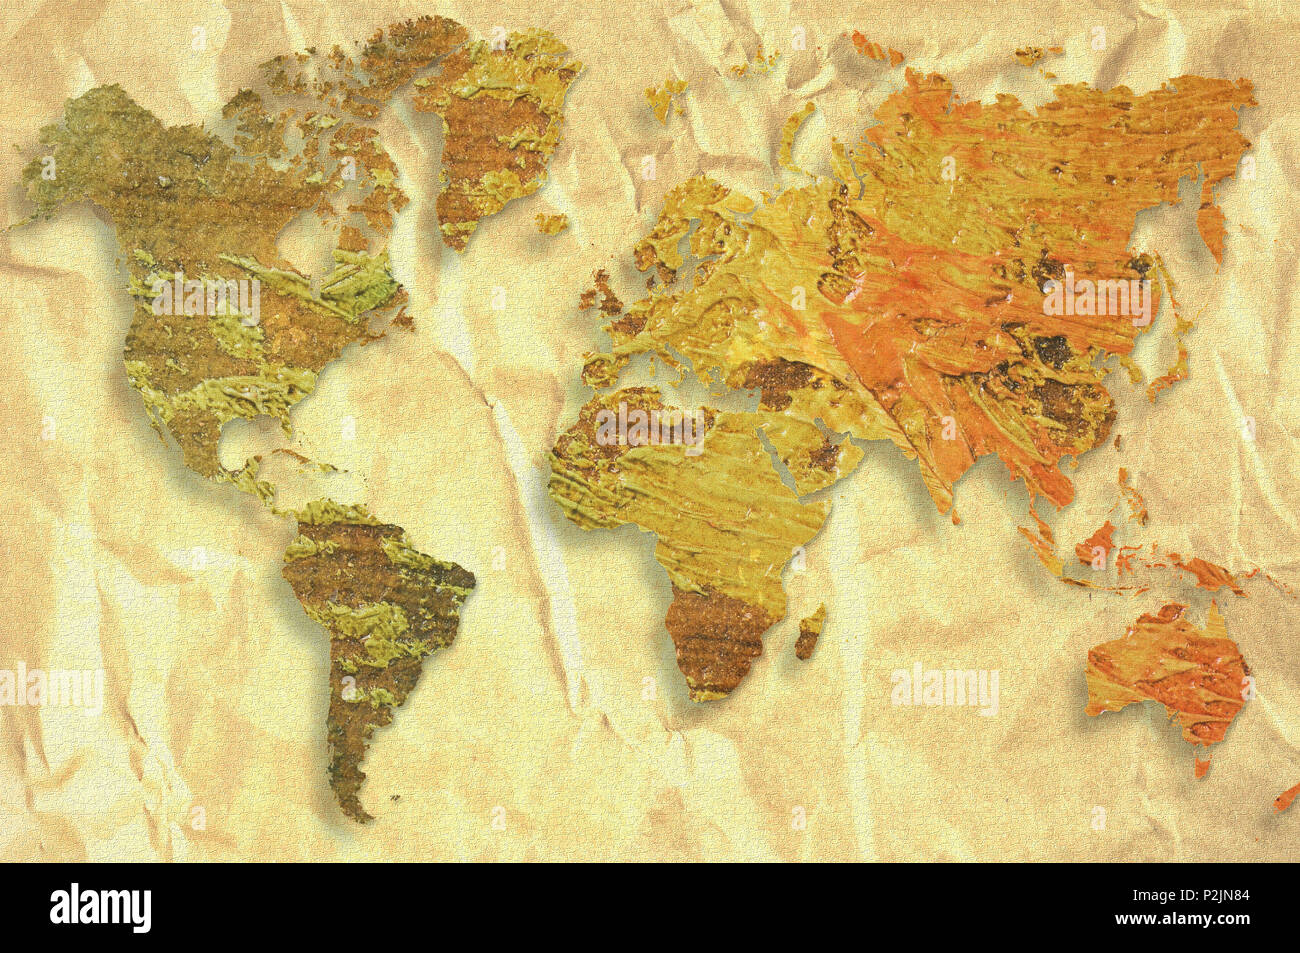 World map made with artistic oil colors on fabric background world map made with artistic oil colors on fabric background elements of this image furnished by nasa gumiabroncs Gallery